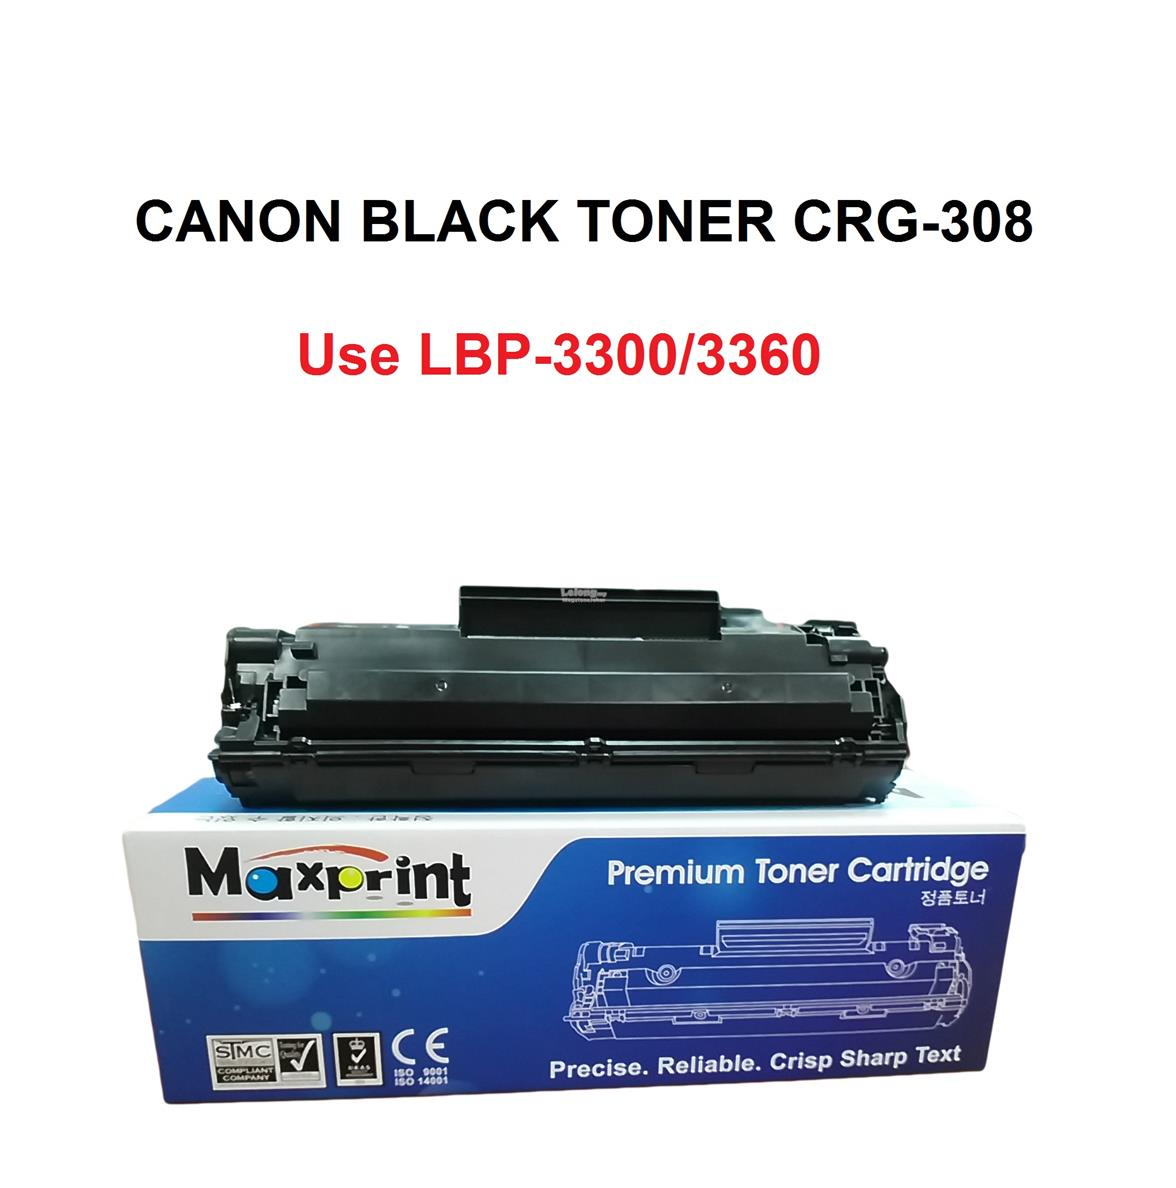 MAXPRINT CANON CRG-308 PREMIUM TONER CARTRIDGE (BLACK)